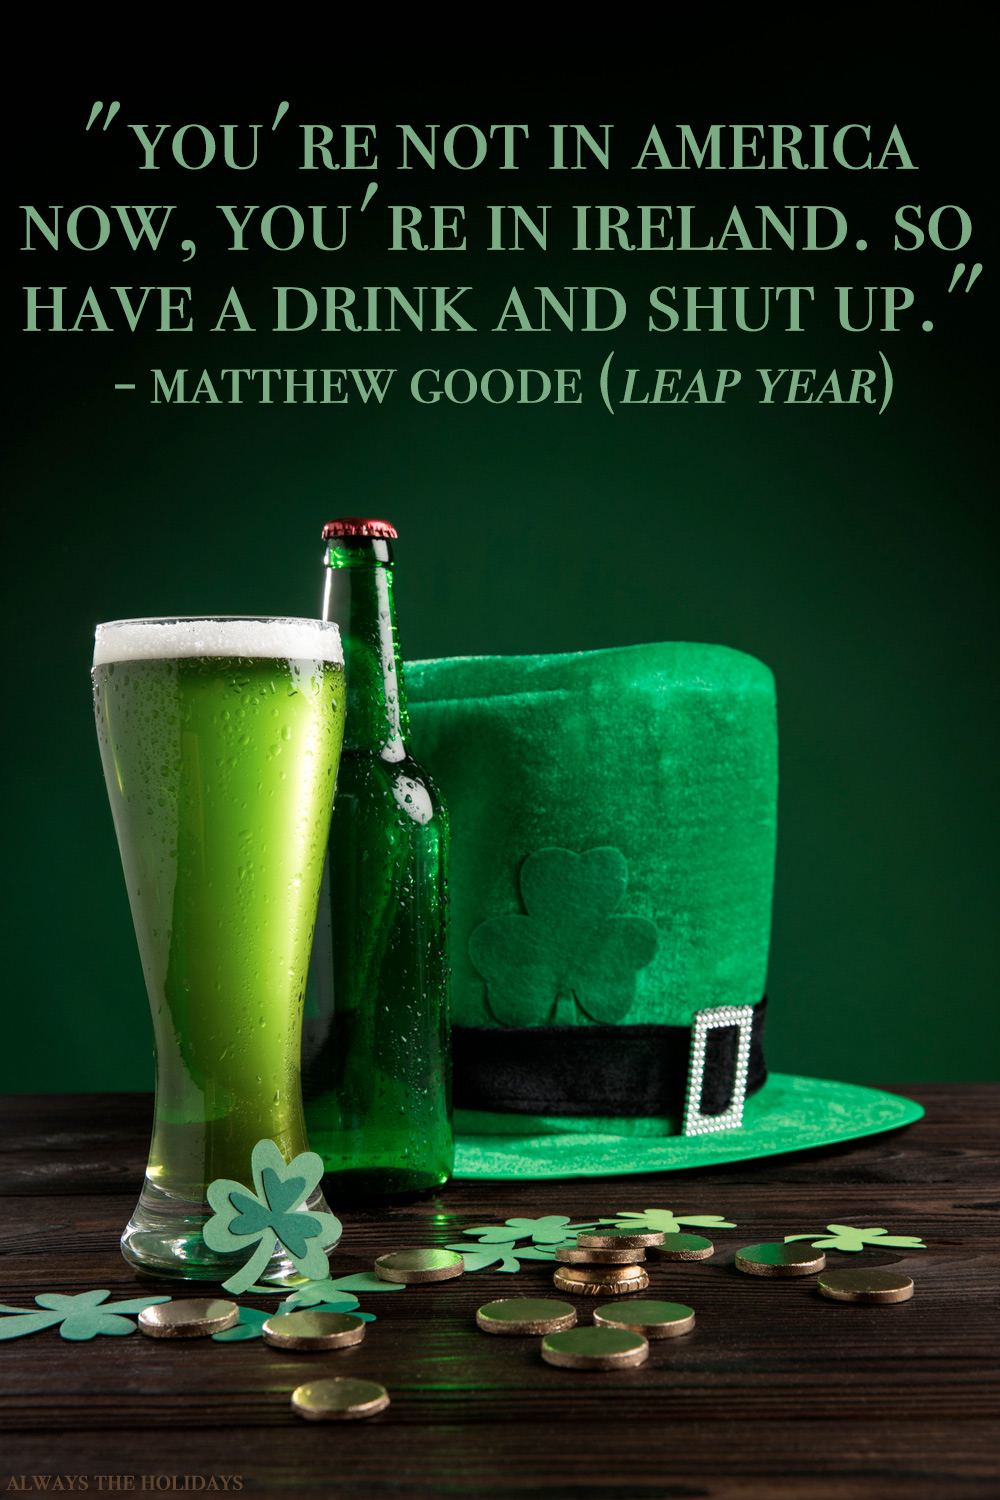 A beer and shamrock hat on a table, with a lucky quotes text overlay from a movie.